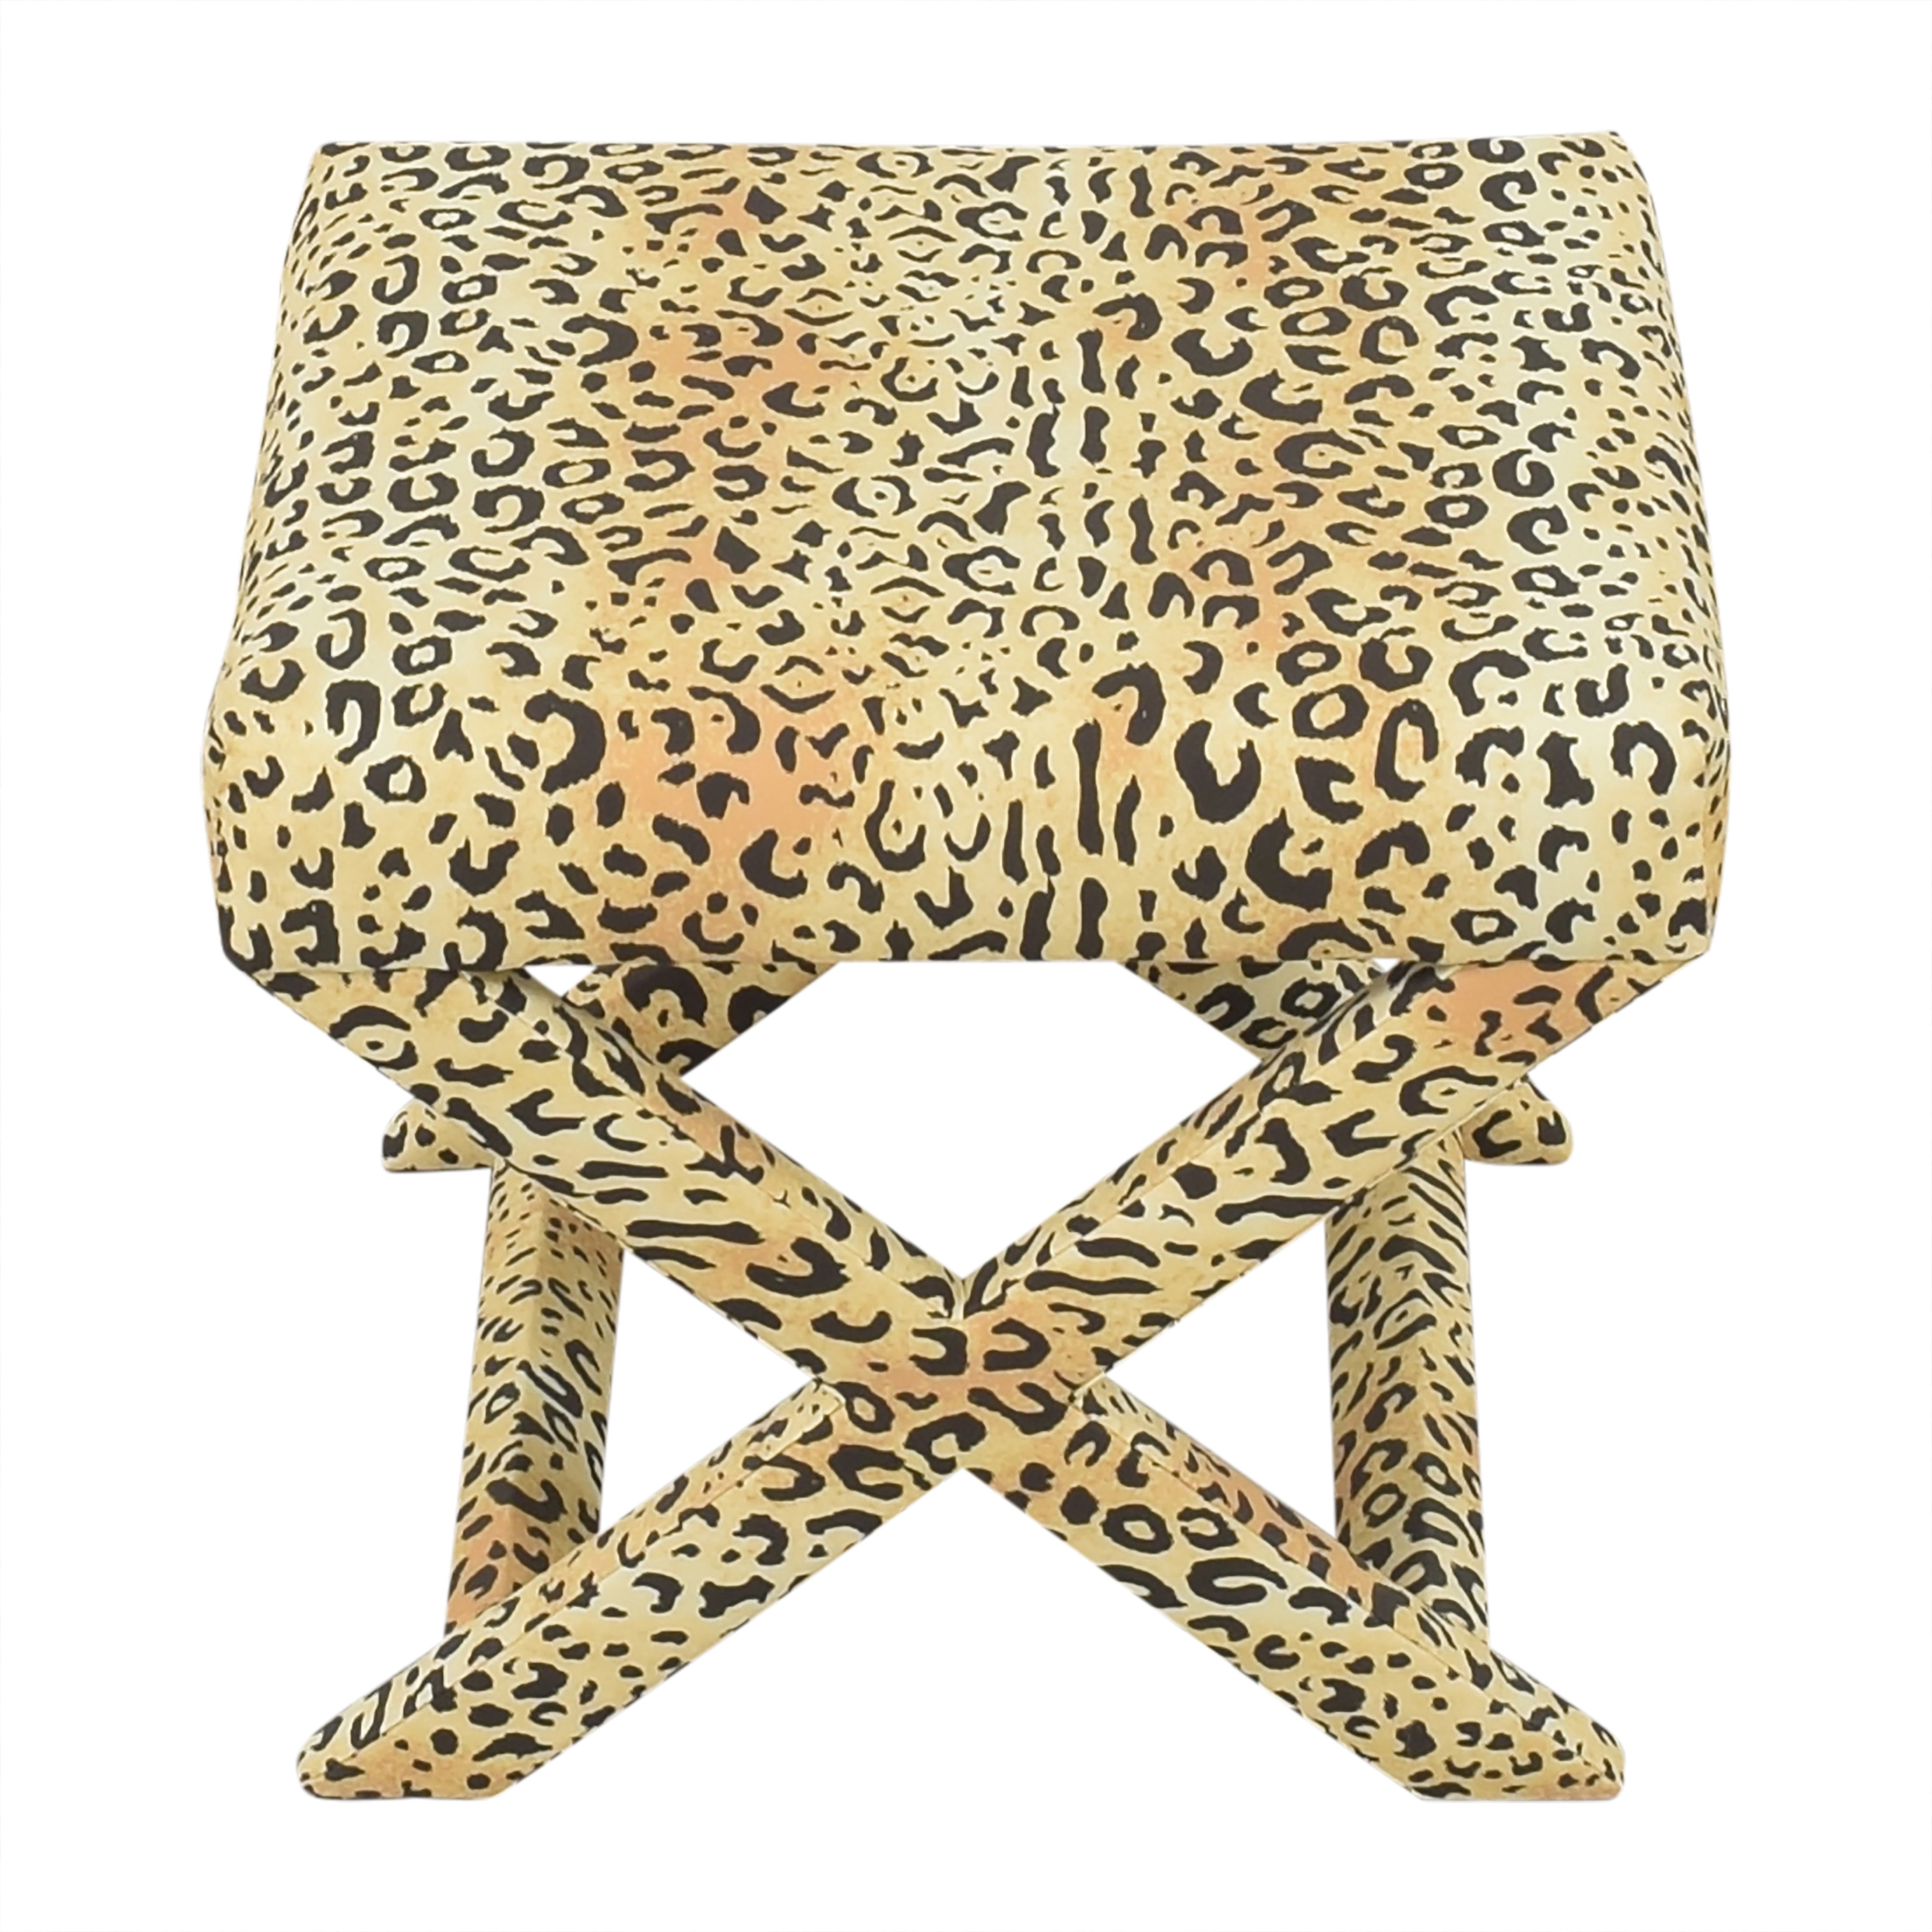 The Inside The Inside Leopard X Bench pa